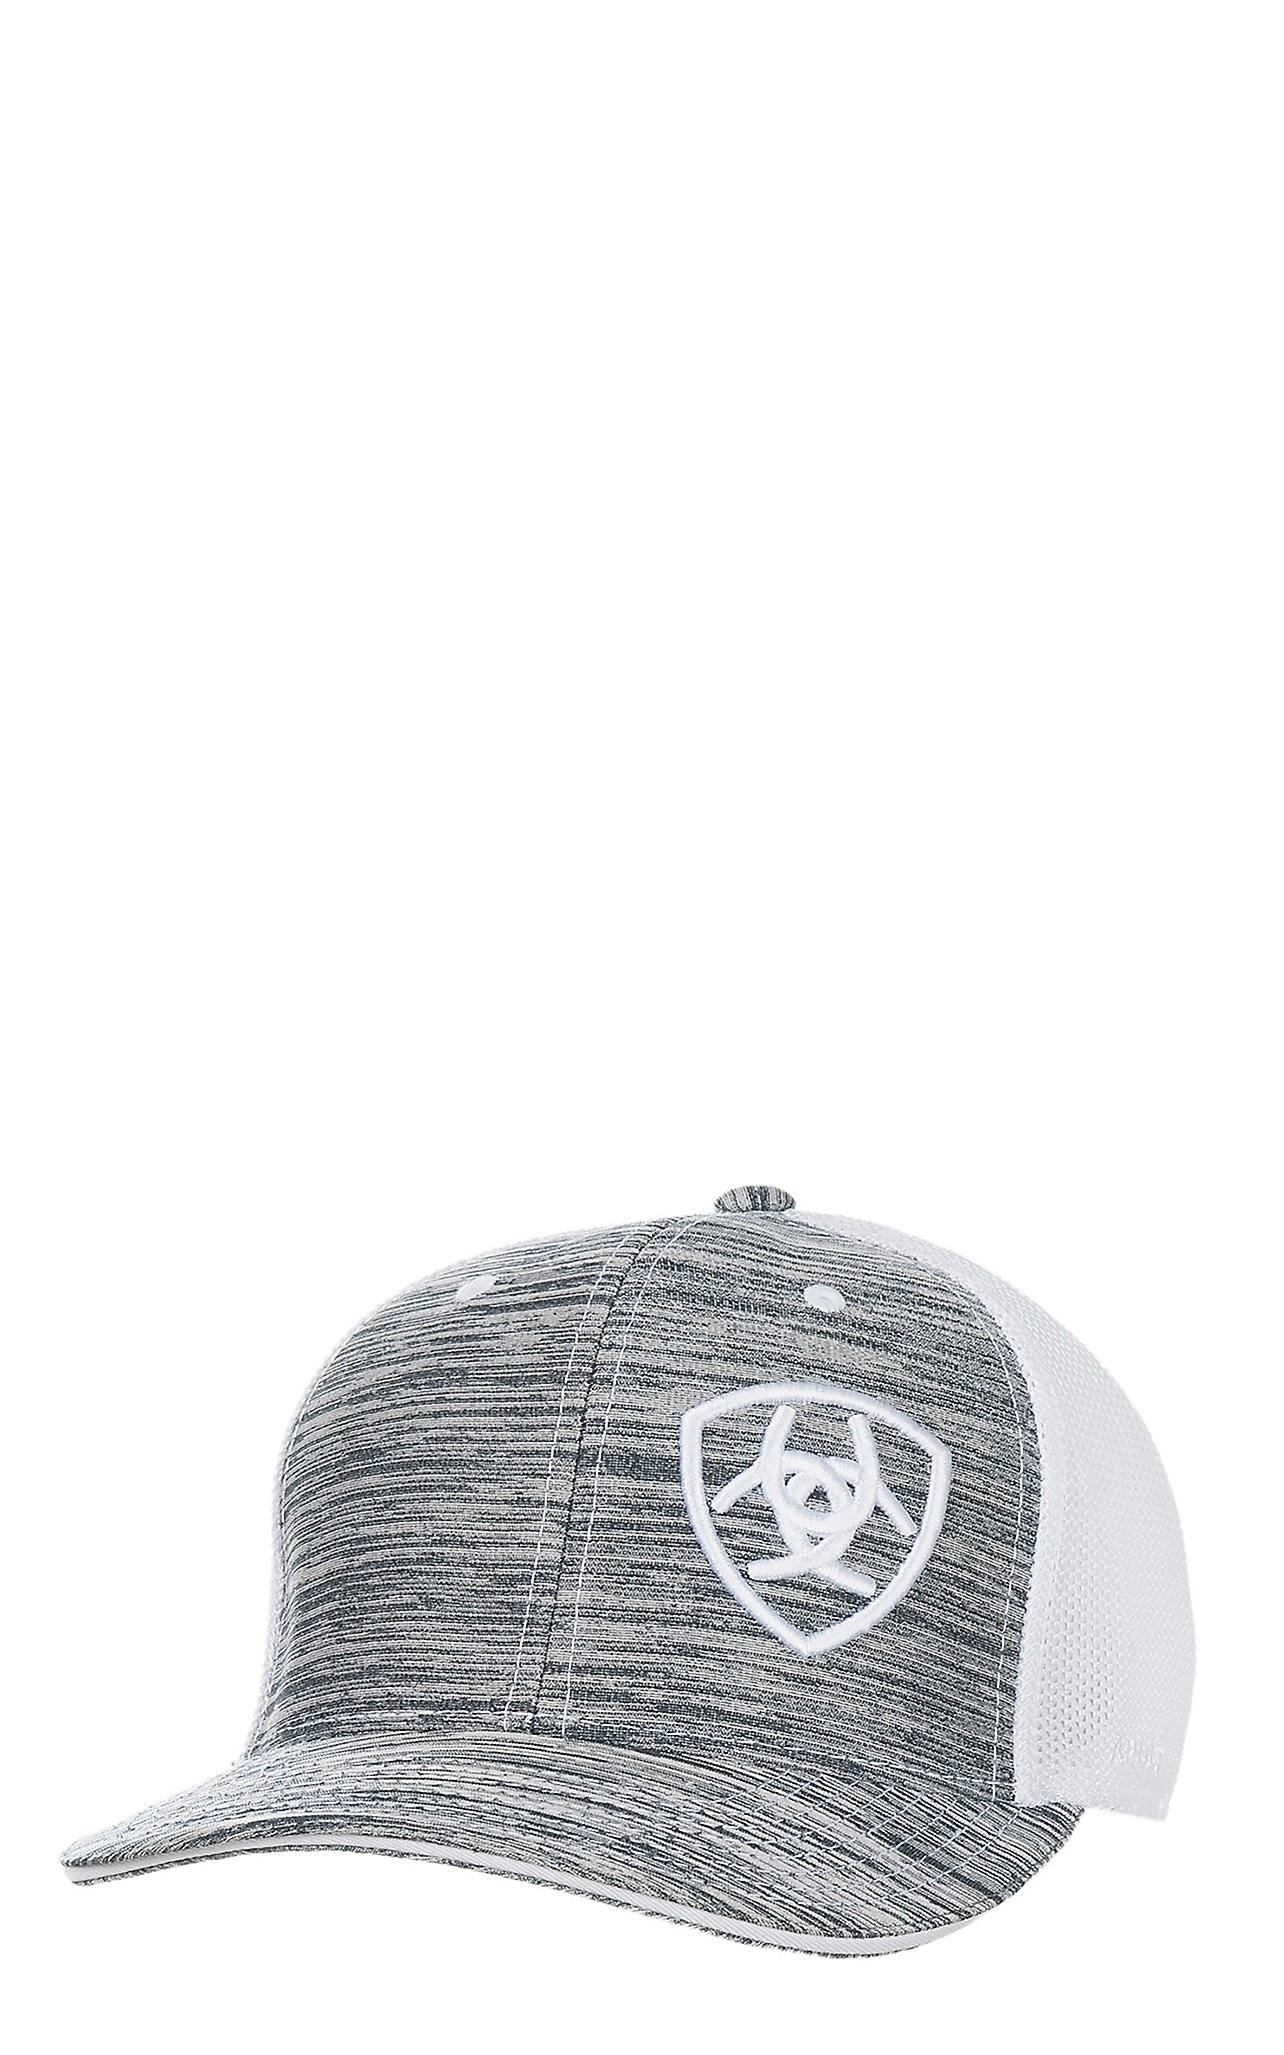 Ariat Heather Grey Embroidered Logo and White Mesh Snap Back Cap d7e7bea9e74e